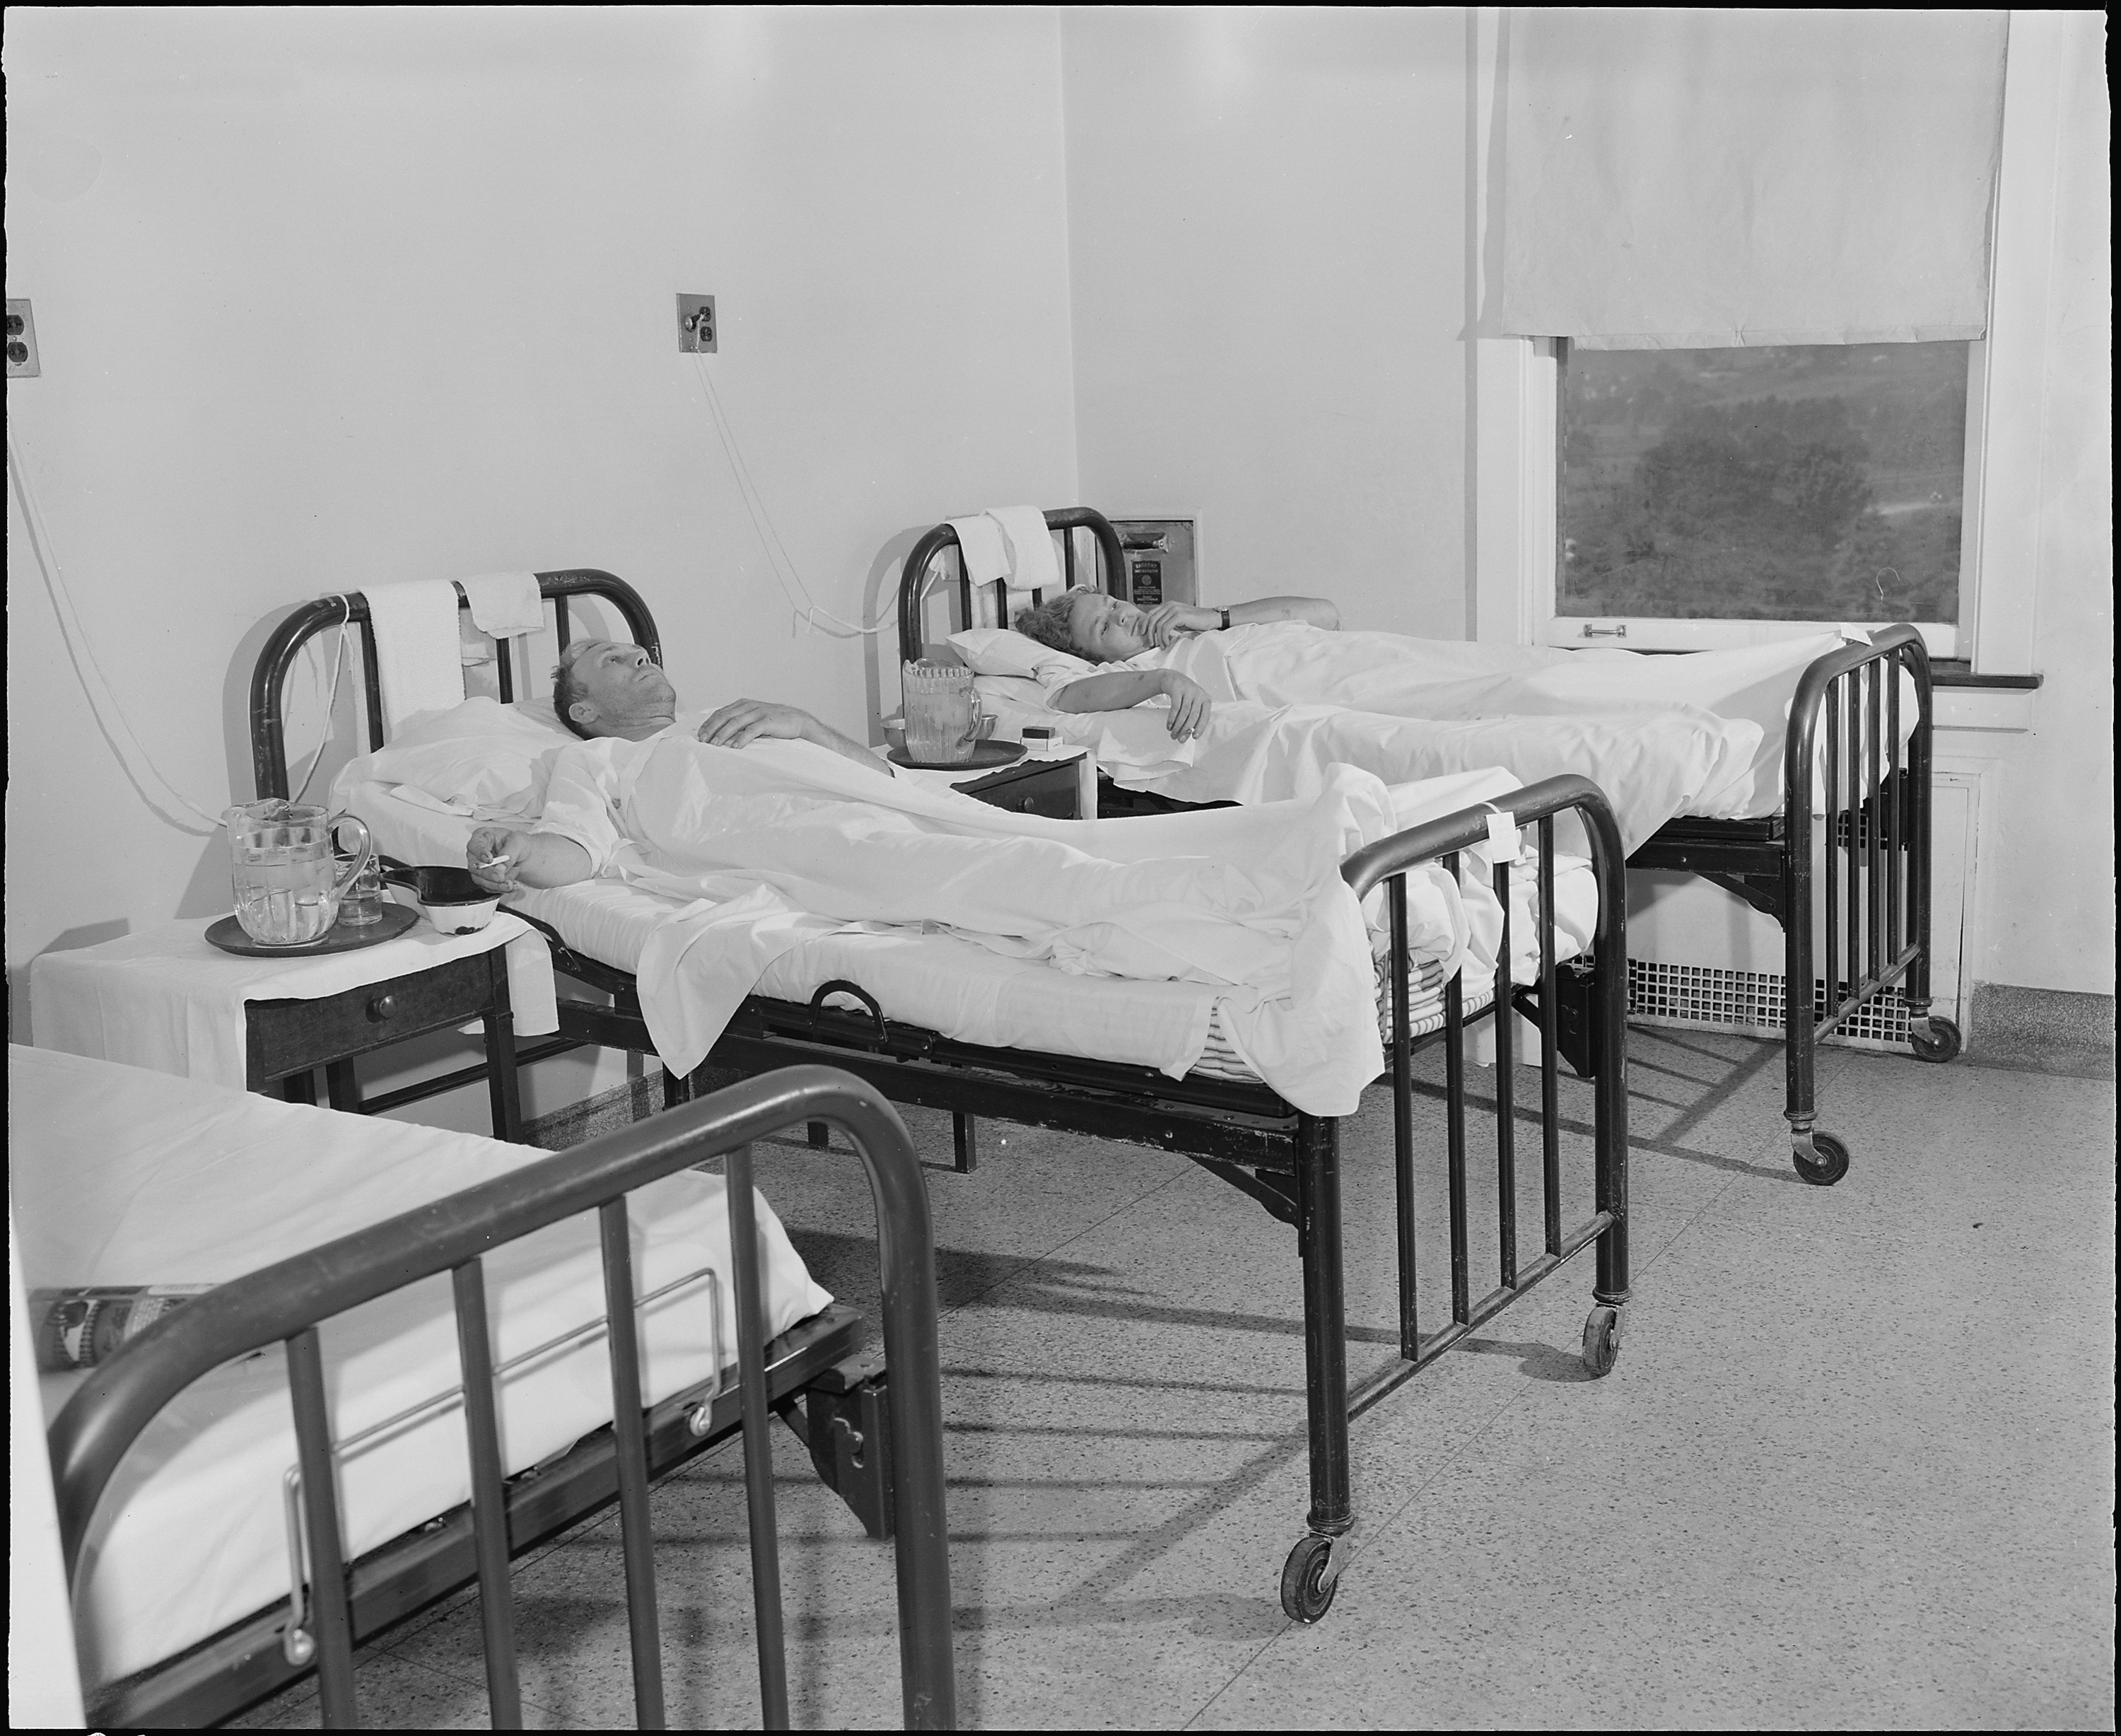 Black and white photo of two patients laying in hospital beds.